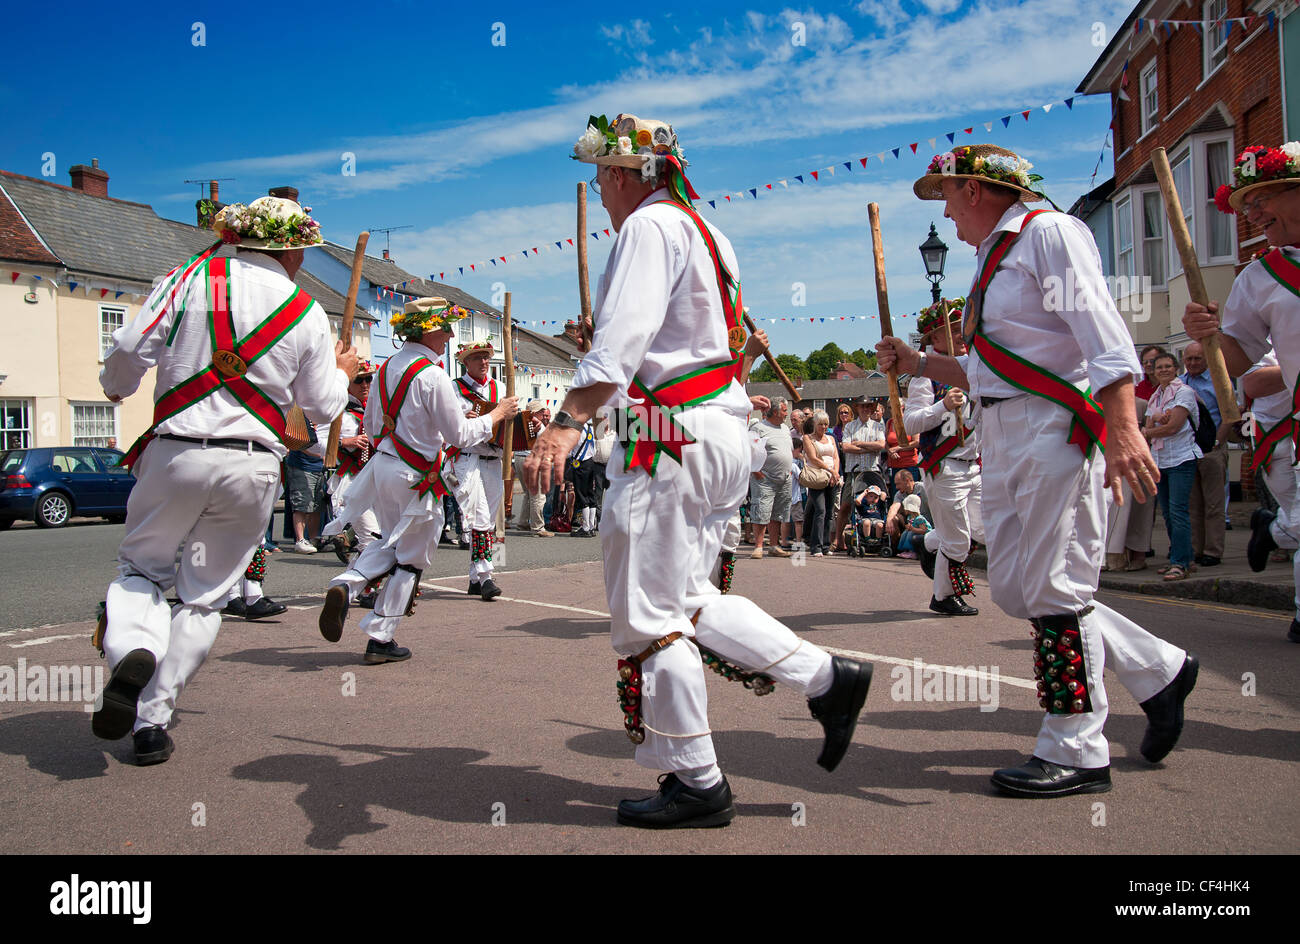 Morris Dancing at the Centenary Morris Dancing Festival in Thaxted. 2011 is the centenary of the founding in December - Stock Image